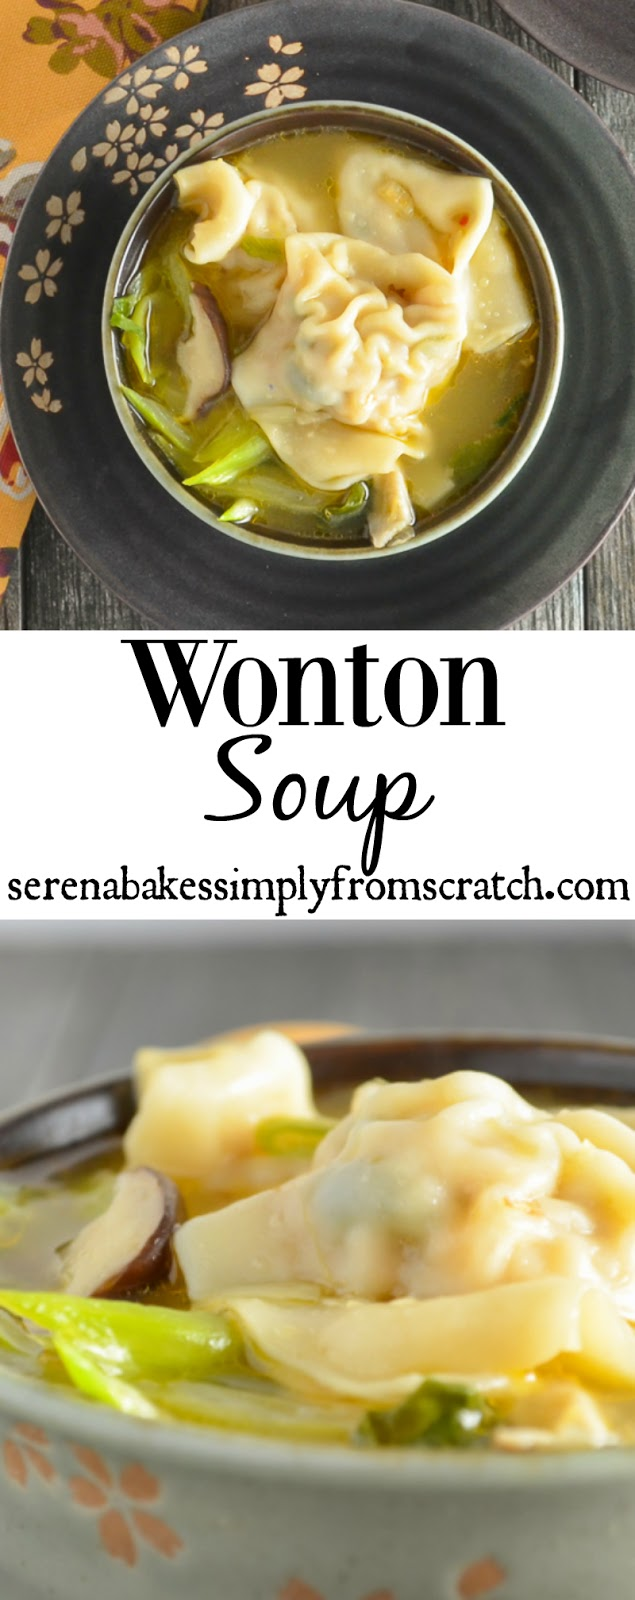 Wonton Soup is hearty yet light with under 500 calories per generous serving! serenabakessimplyfromscratch.com